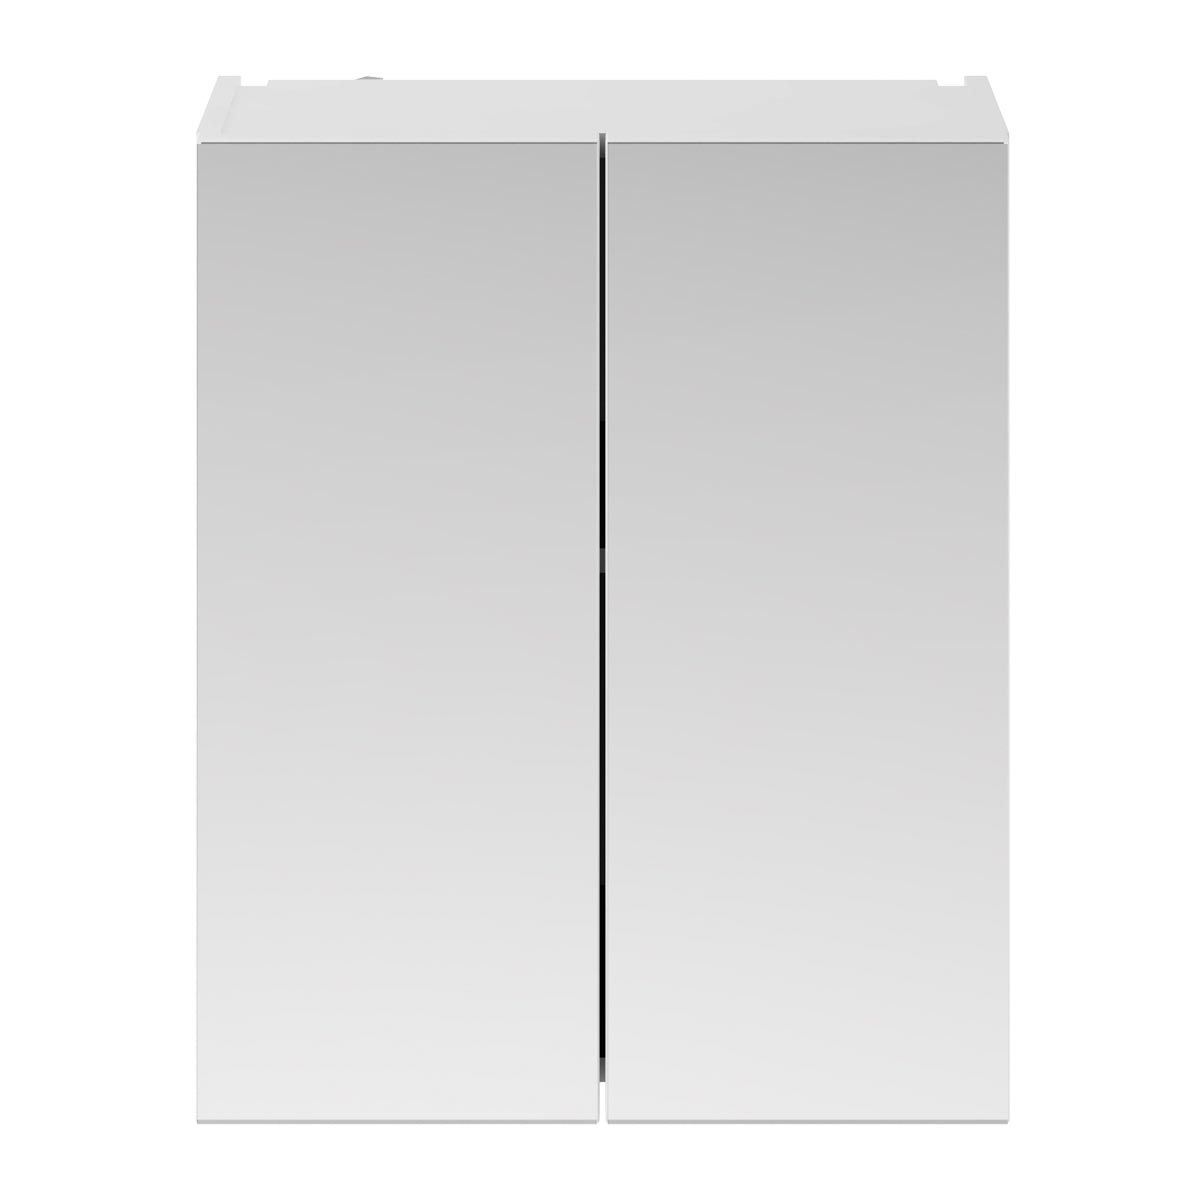 Nuie Athena Gloss White Double Mirrored Bathroom Cabinet